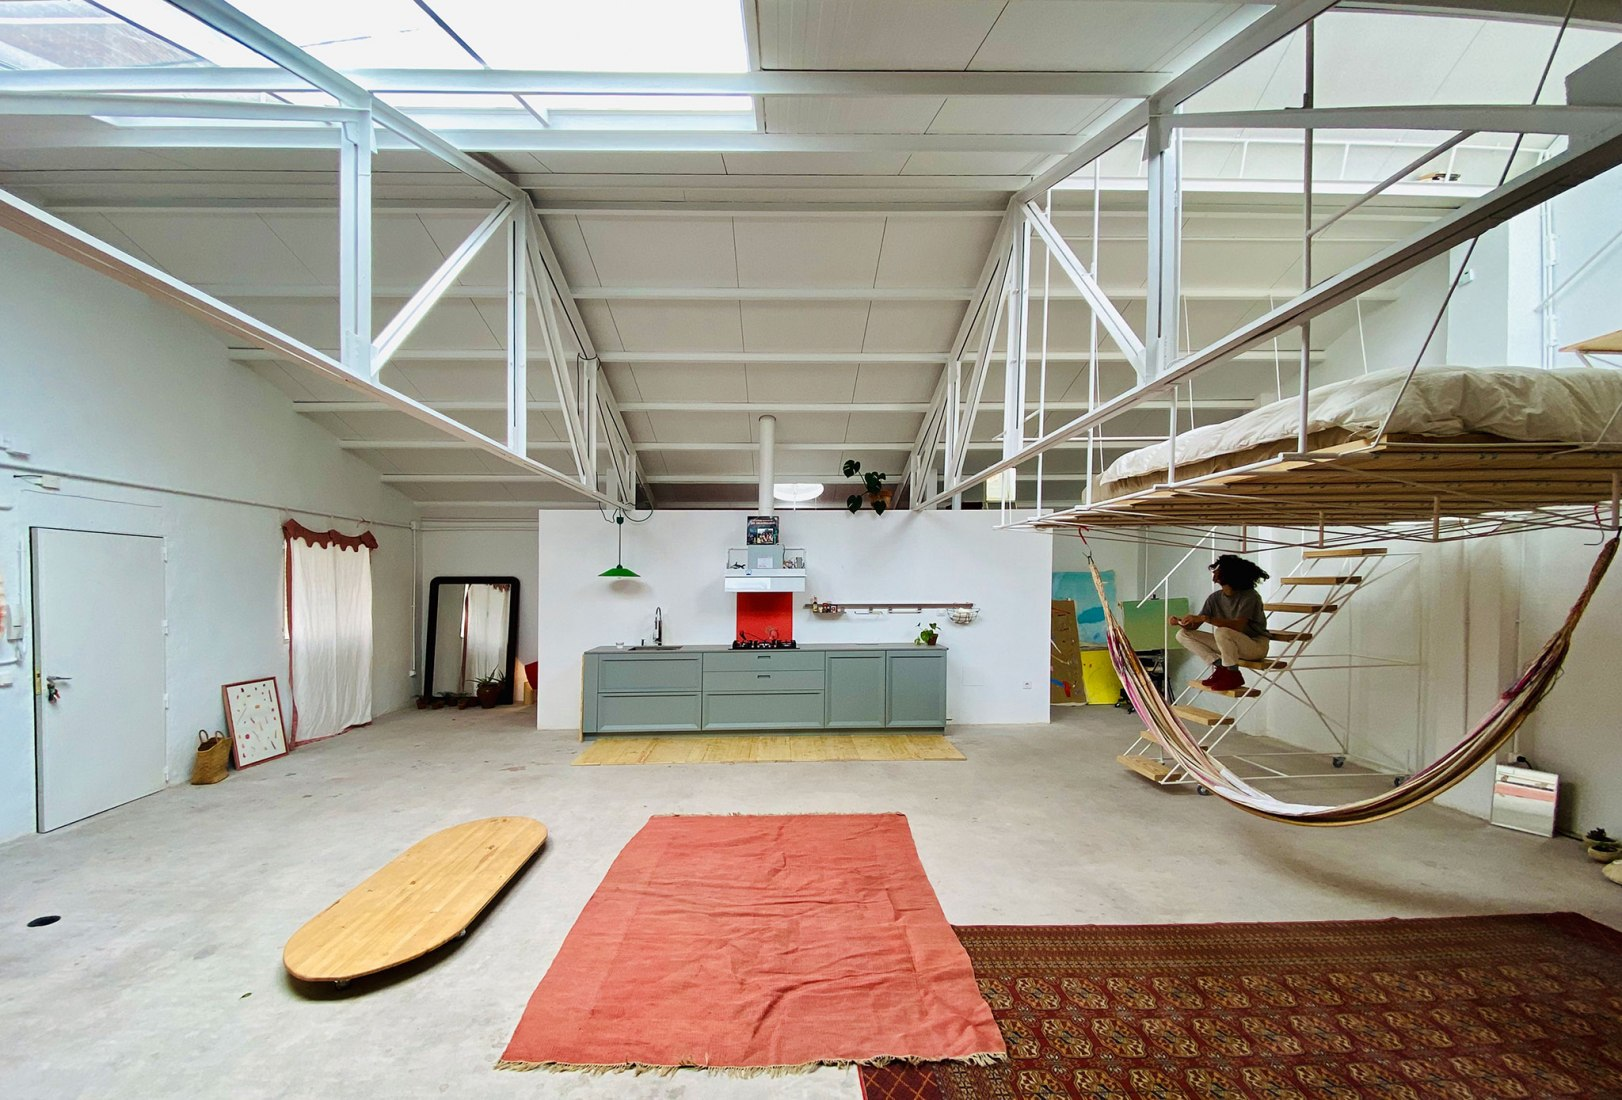 Warehouse space elevated bed and high ceilings.